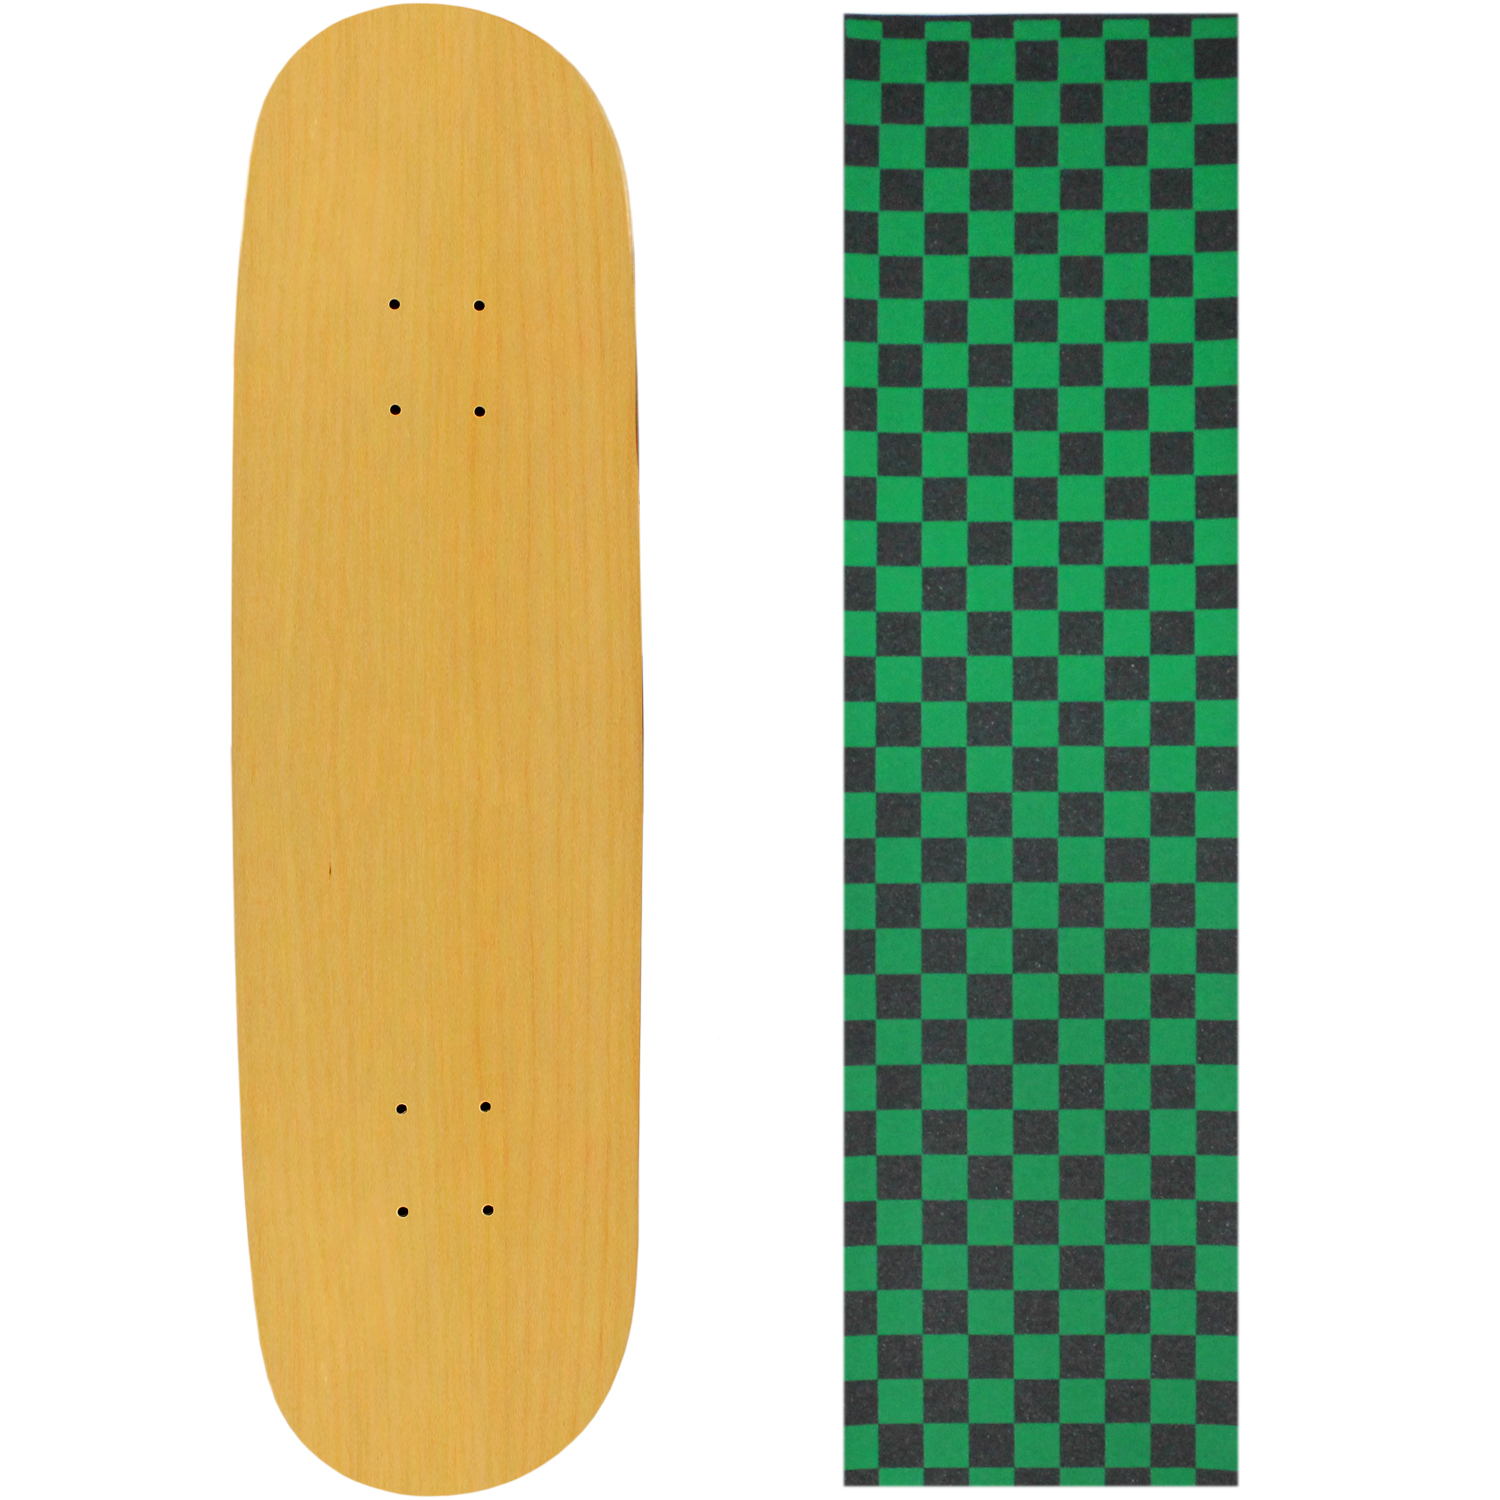 Moose Skateboard Deck Pro 7-Ply Canadian Maple NATURAL Wi...